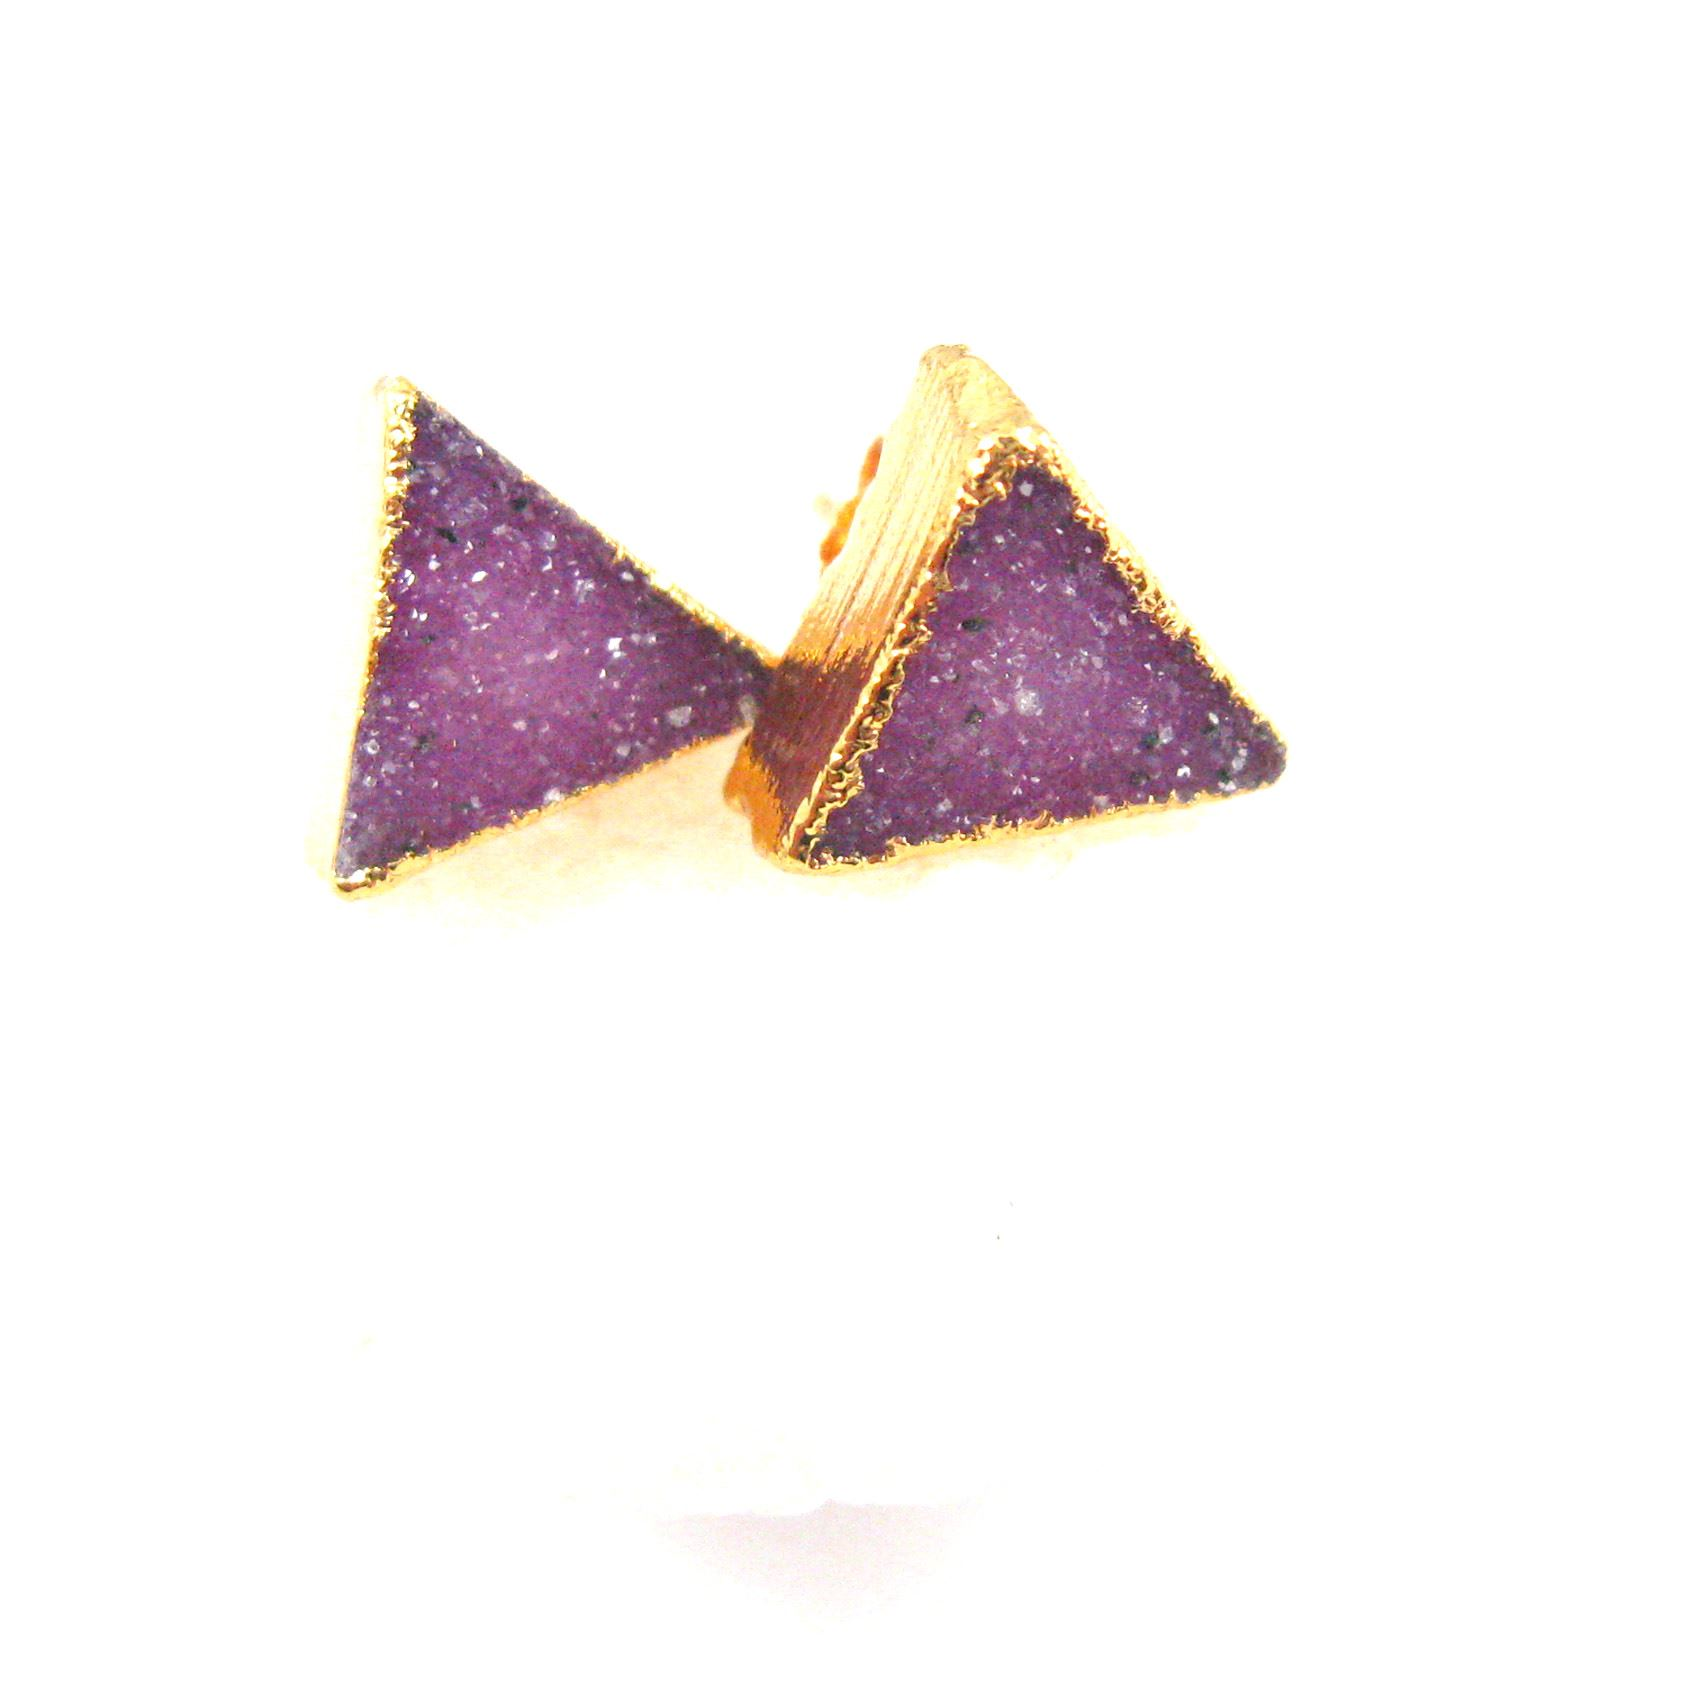 Druzy Earring Studs, Pink Druzy Agate,Gemstone Stud Earrings - Gold plated Sterling Silver- Triangle 10mm - 1 Pair